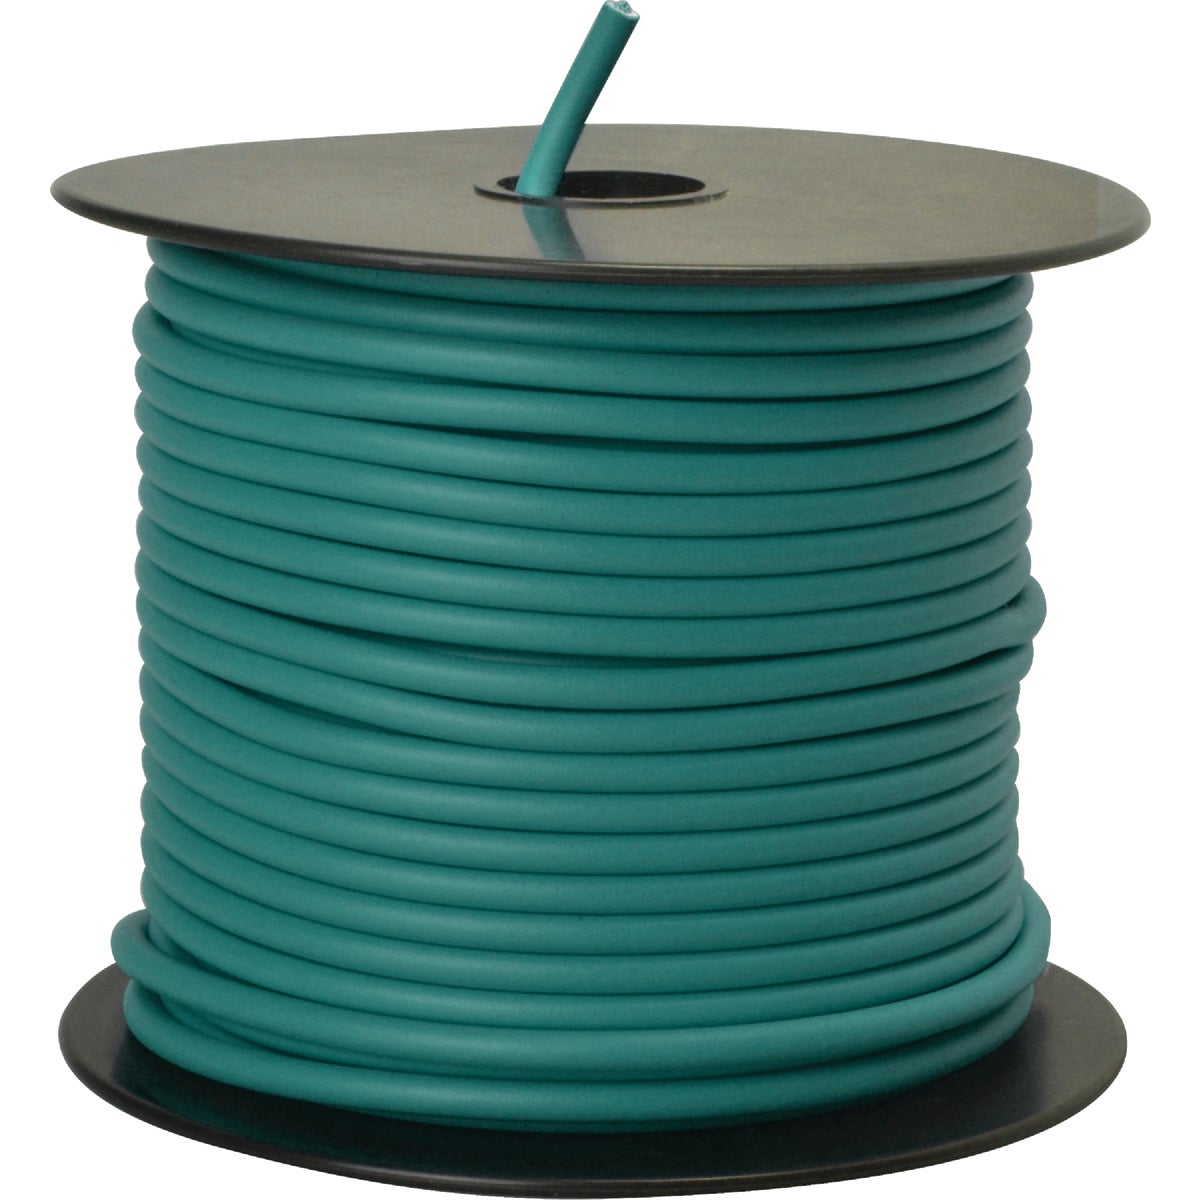 100' 12GA GRN AUTO WIRE - 12-100-15 by Woods Wire Coleman